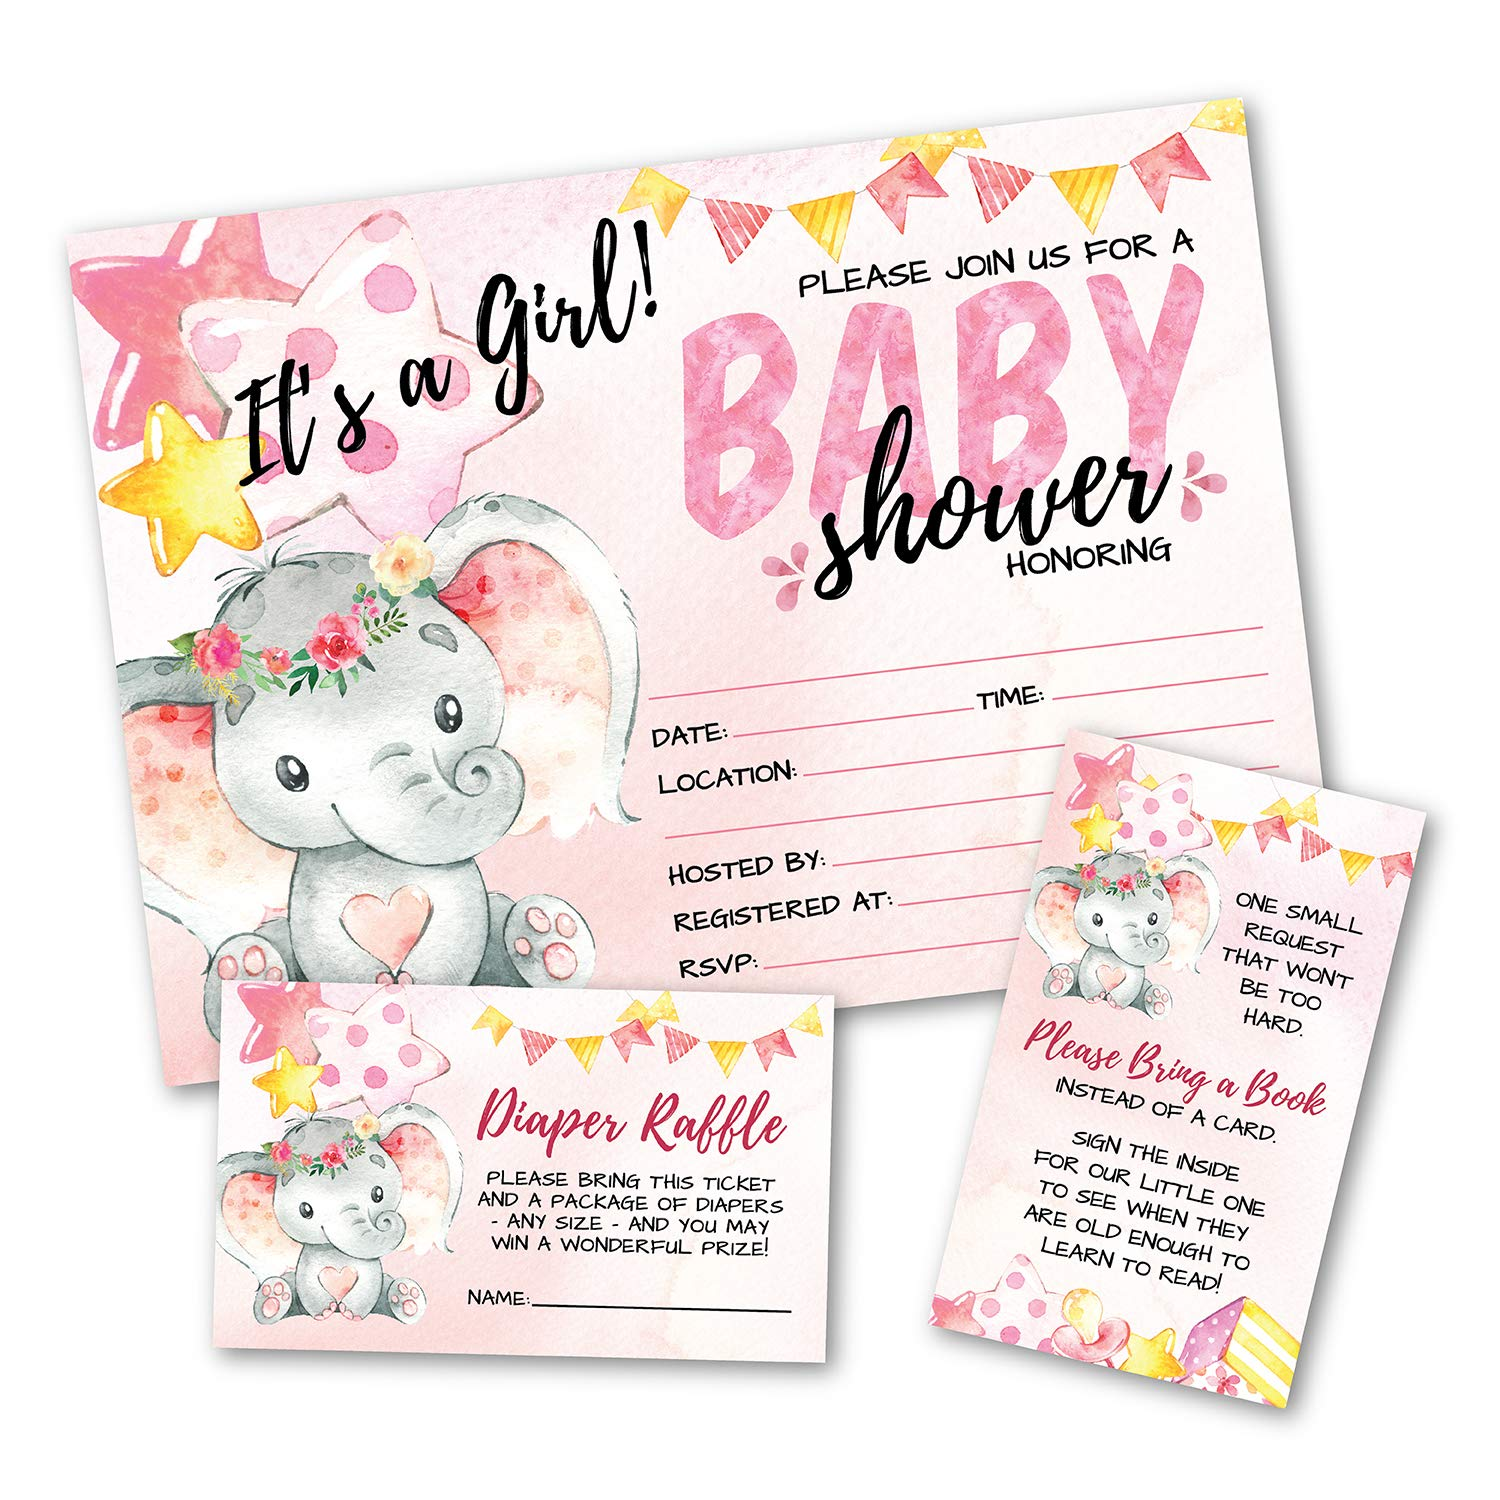 Deluxe Pink Elephant Baby Shower Invitations, Jungle, Tropical Safari Animals, Its A Girl Party Invites, Includes- 20 Each Large Double Sided 5 x 7 Invites, Raffle Tickets, and Book Request Inserts by Pink Pixie Studio (Image #9)